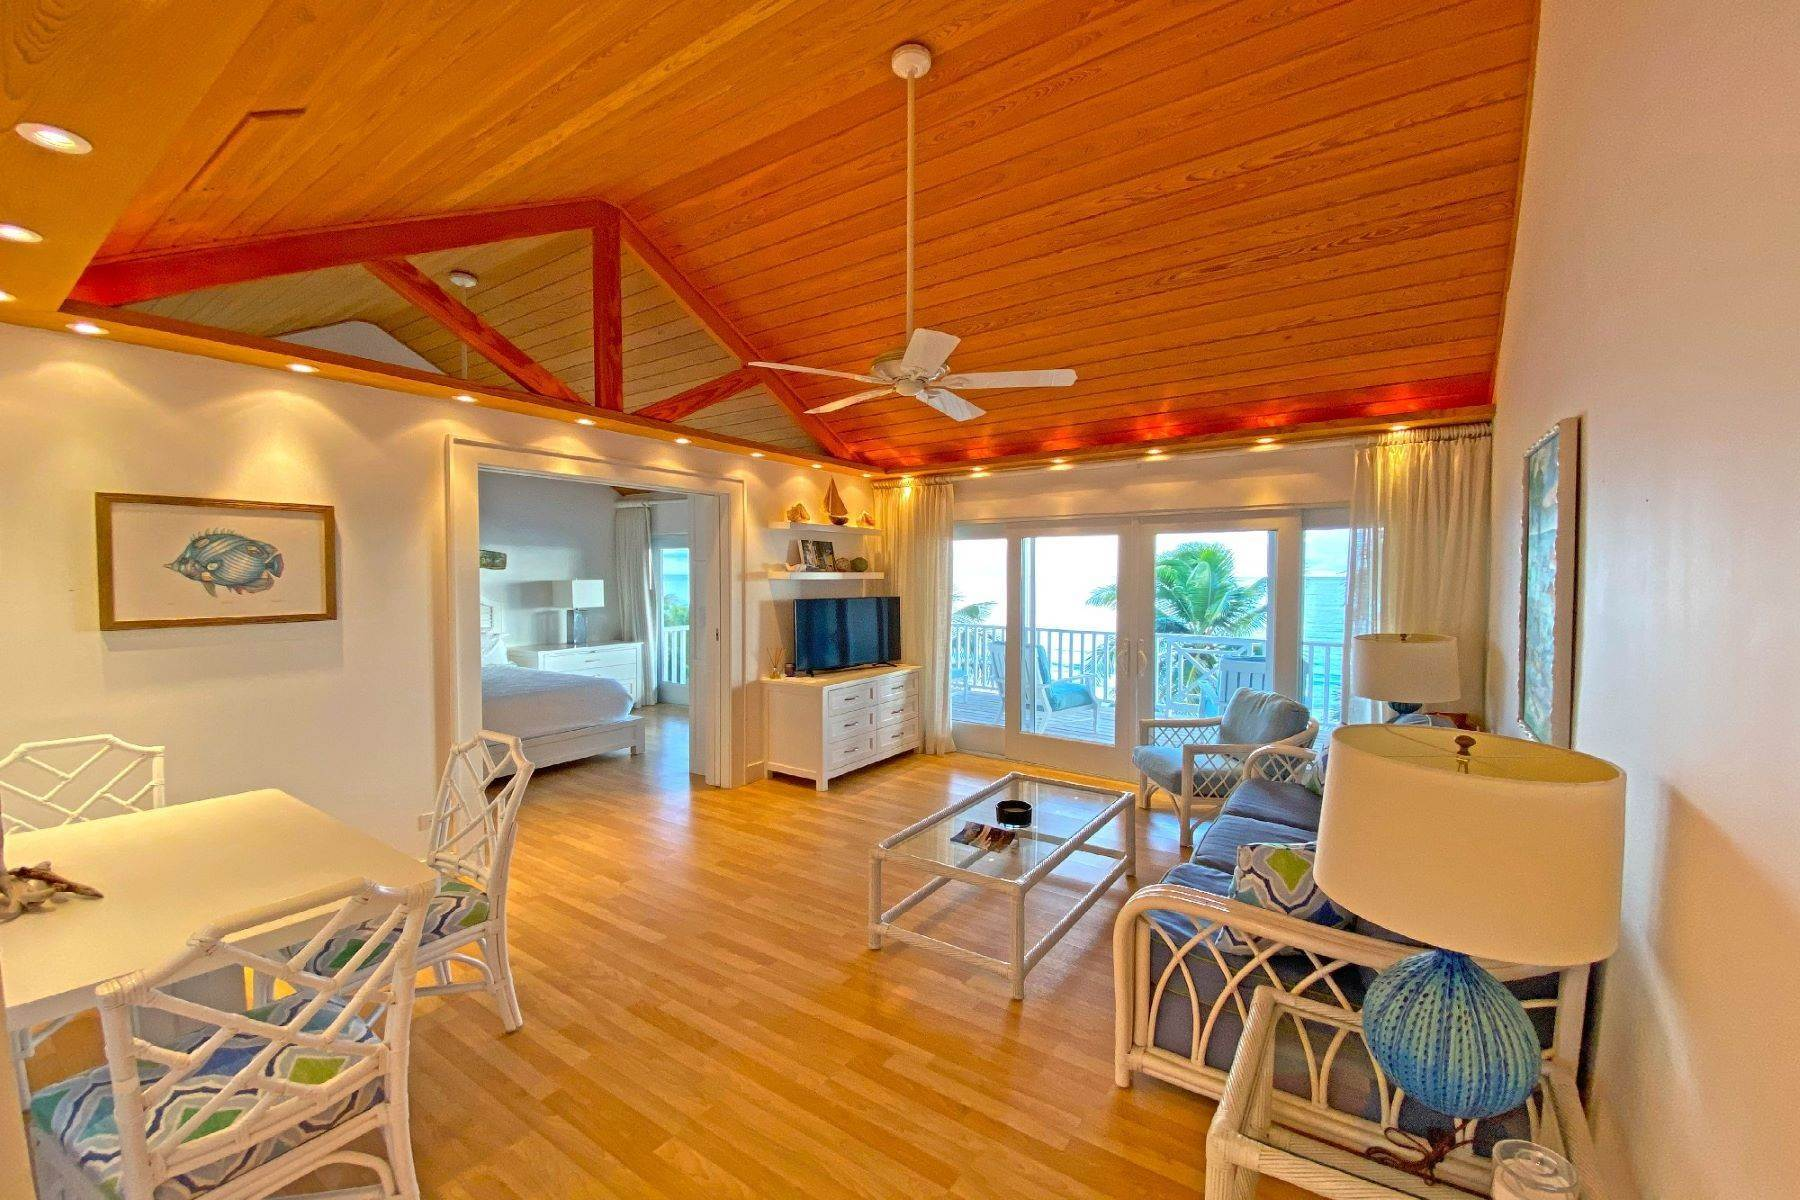 Single Family Homes for Sale at Windermere Pied-a-Terre Windermere Island, Eleuthera Bahamas